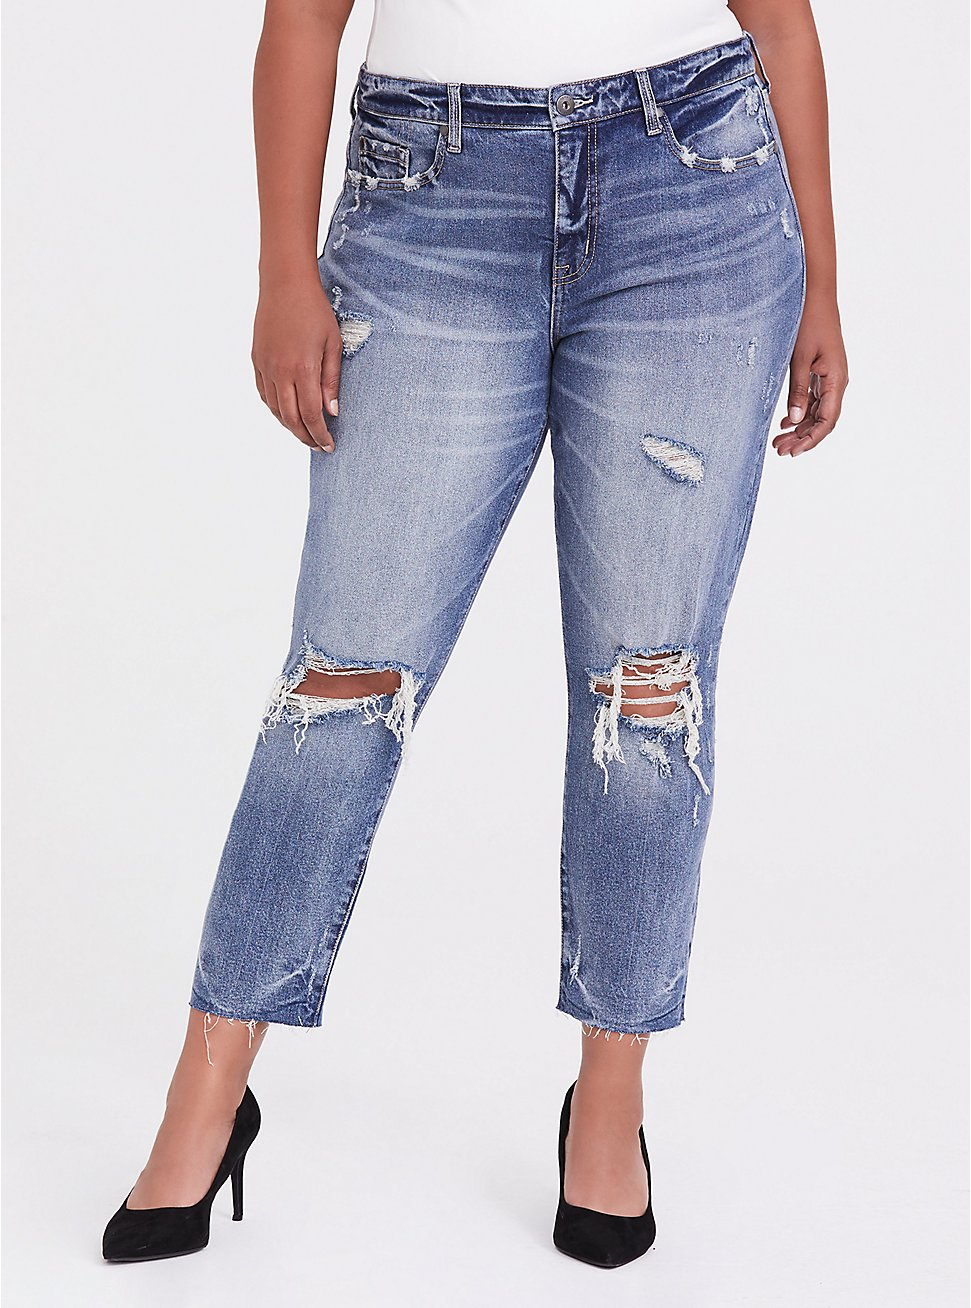 High Rise Straight Jean - Medium Wash, BLUE CHILL, hi-res